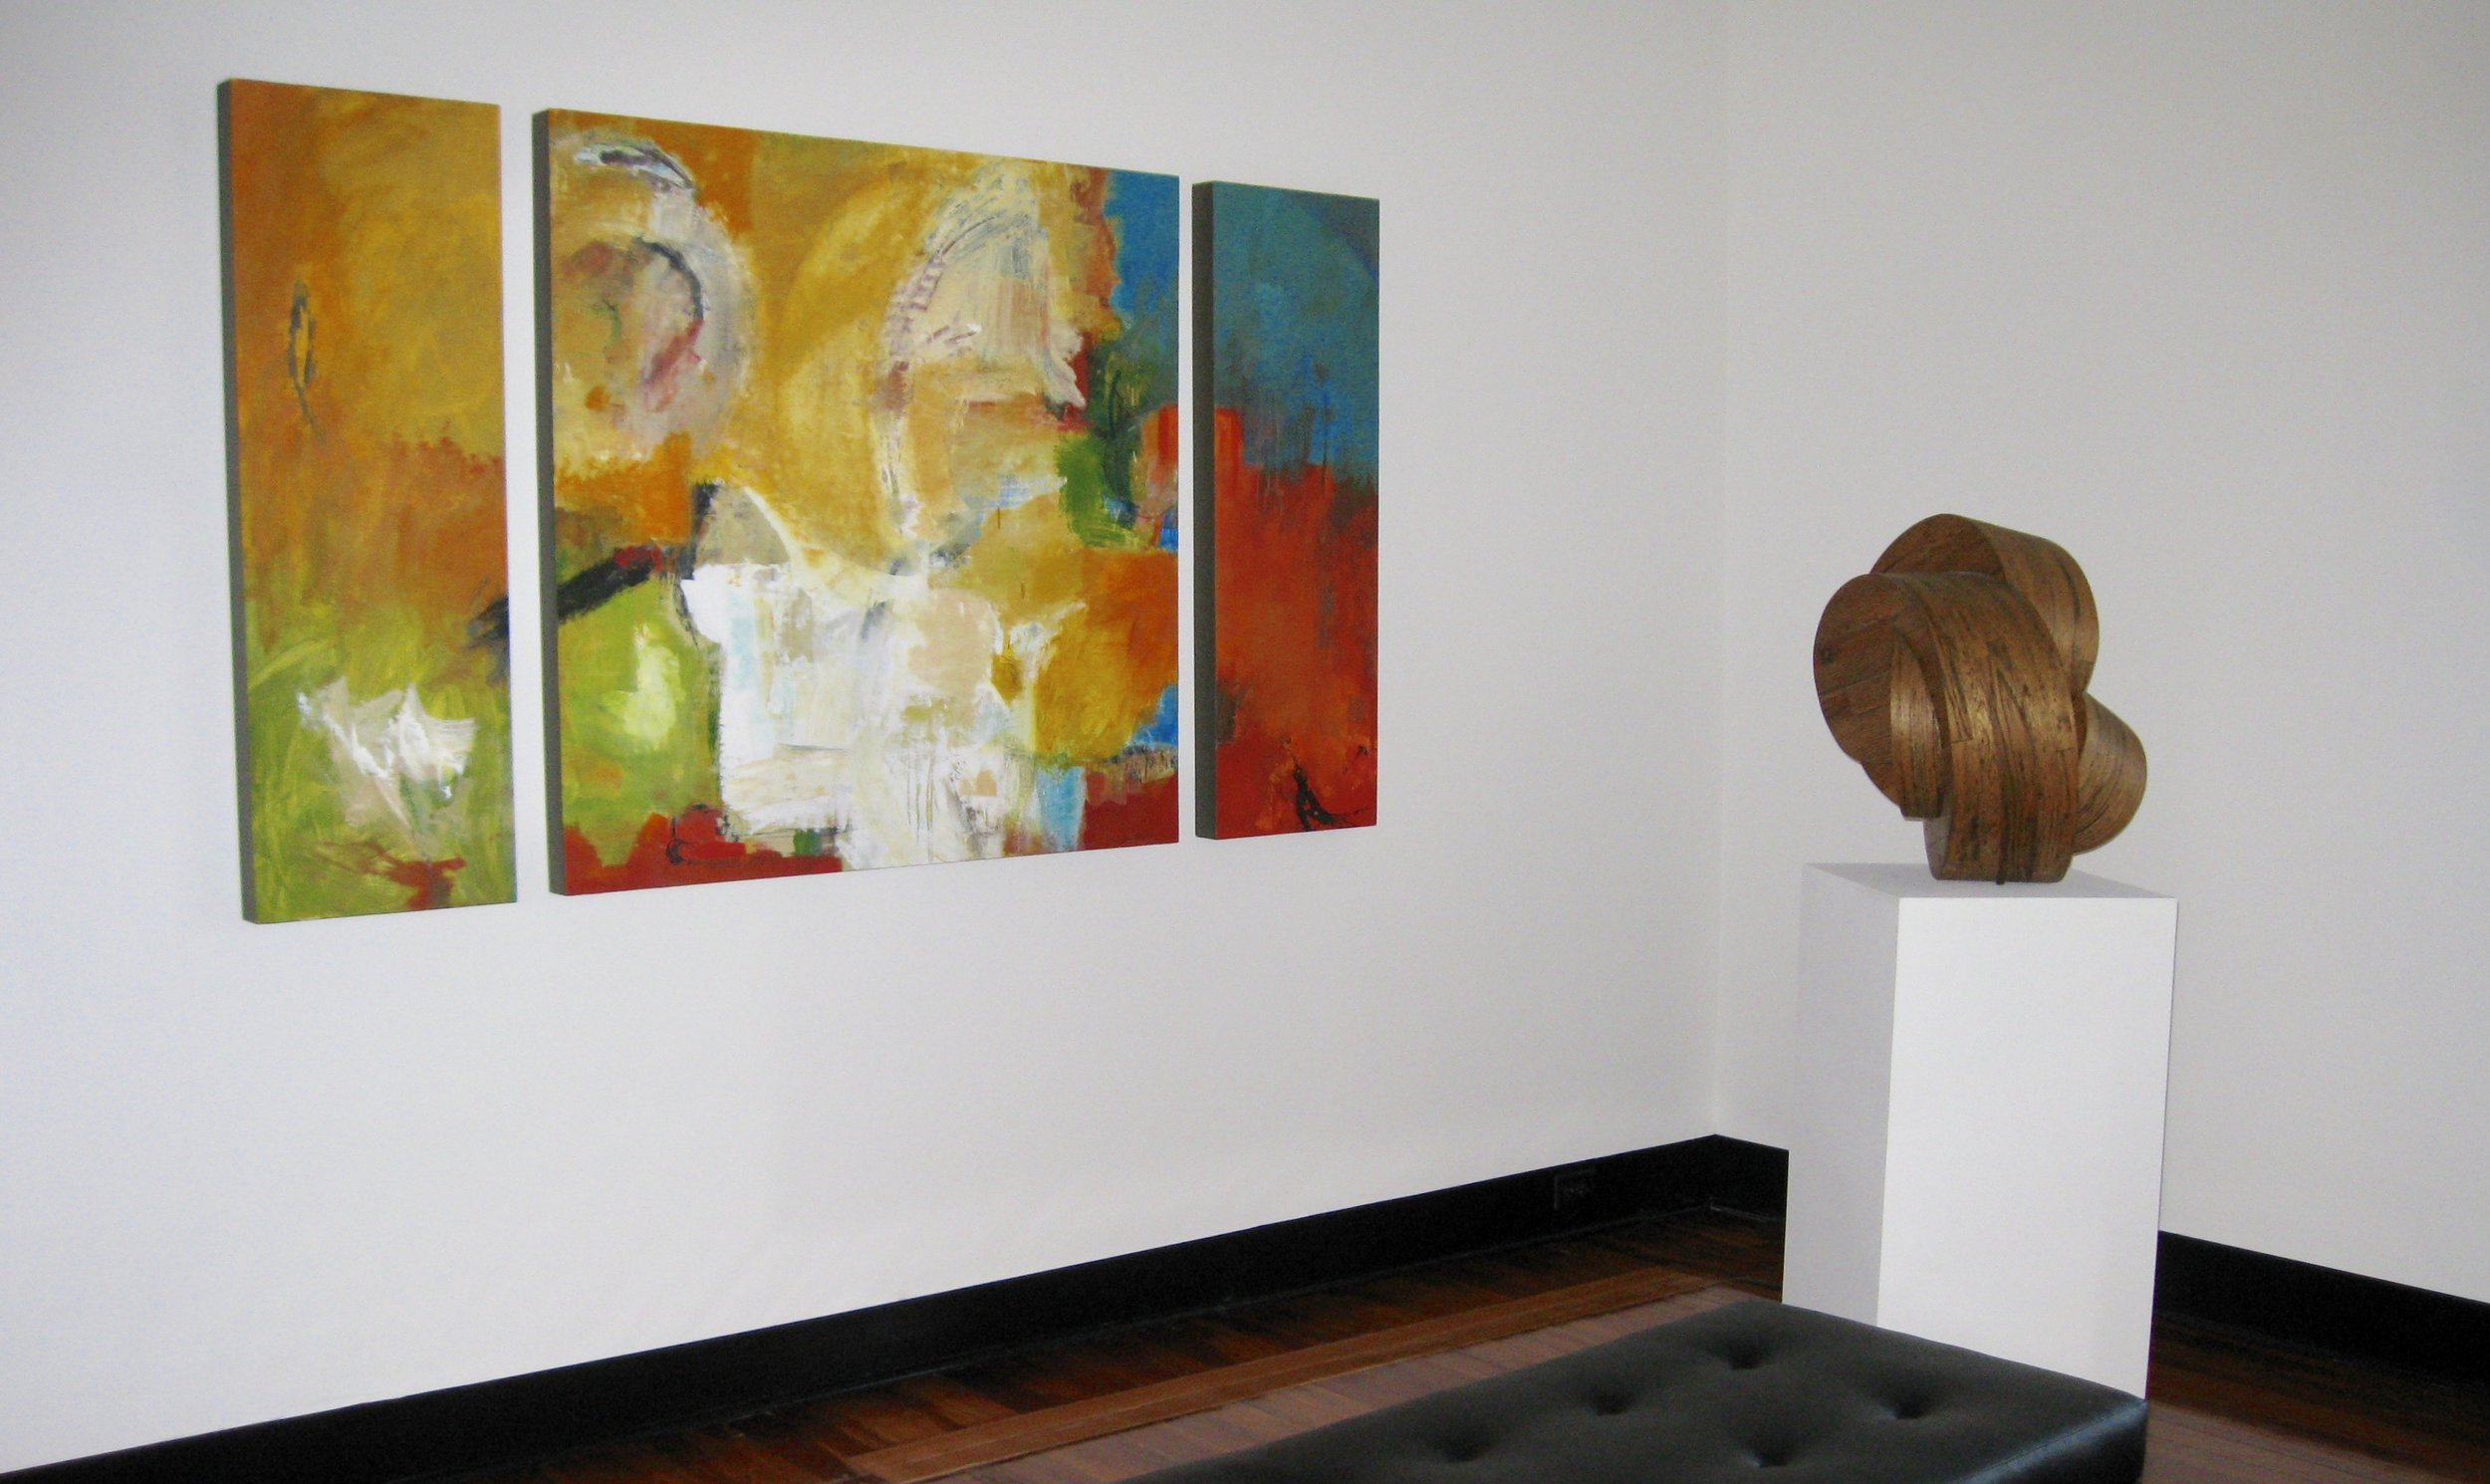 Gator Awakening  triptych by Audrey Phillips,  Juxtus  by Charles Parkhill